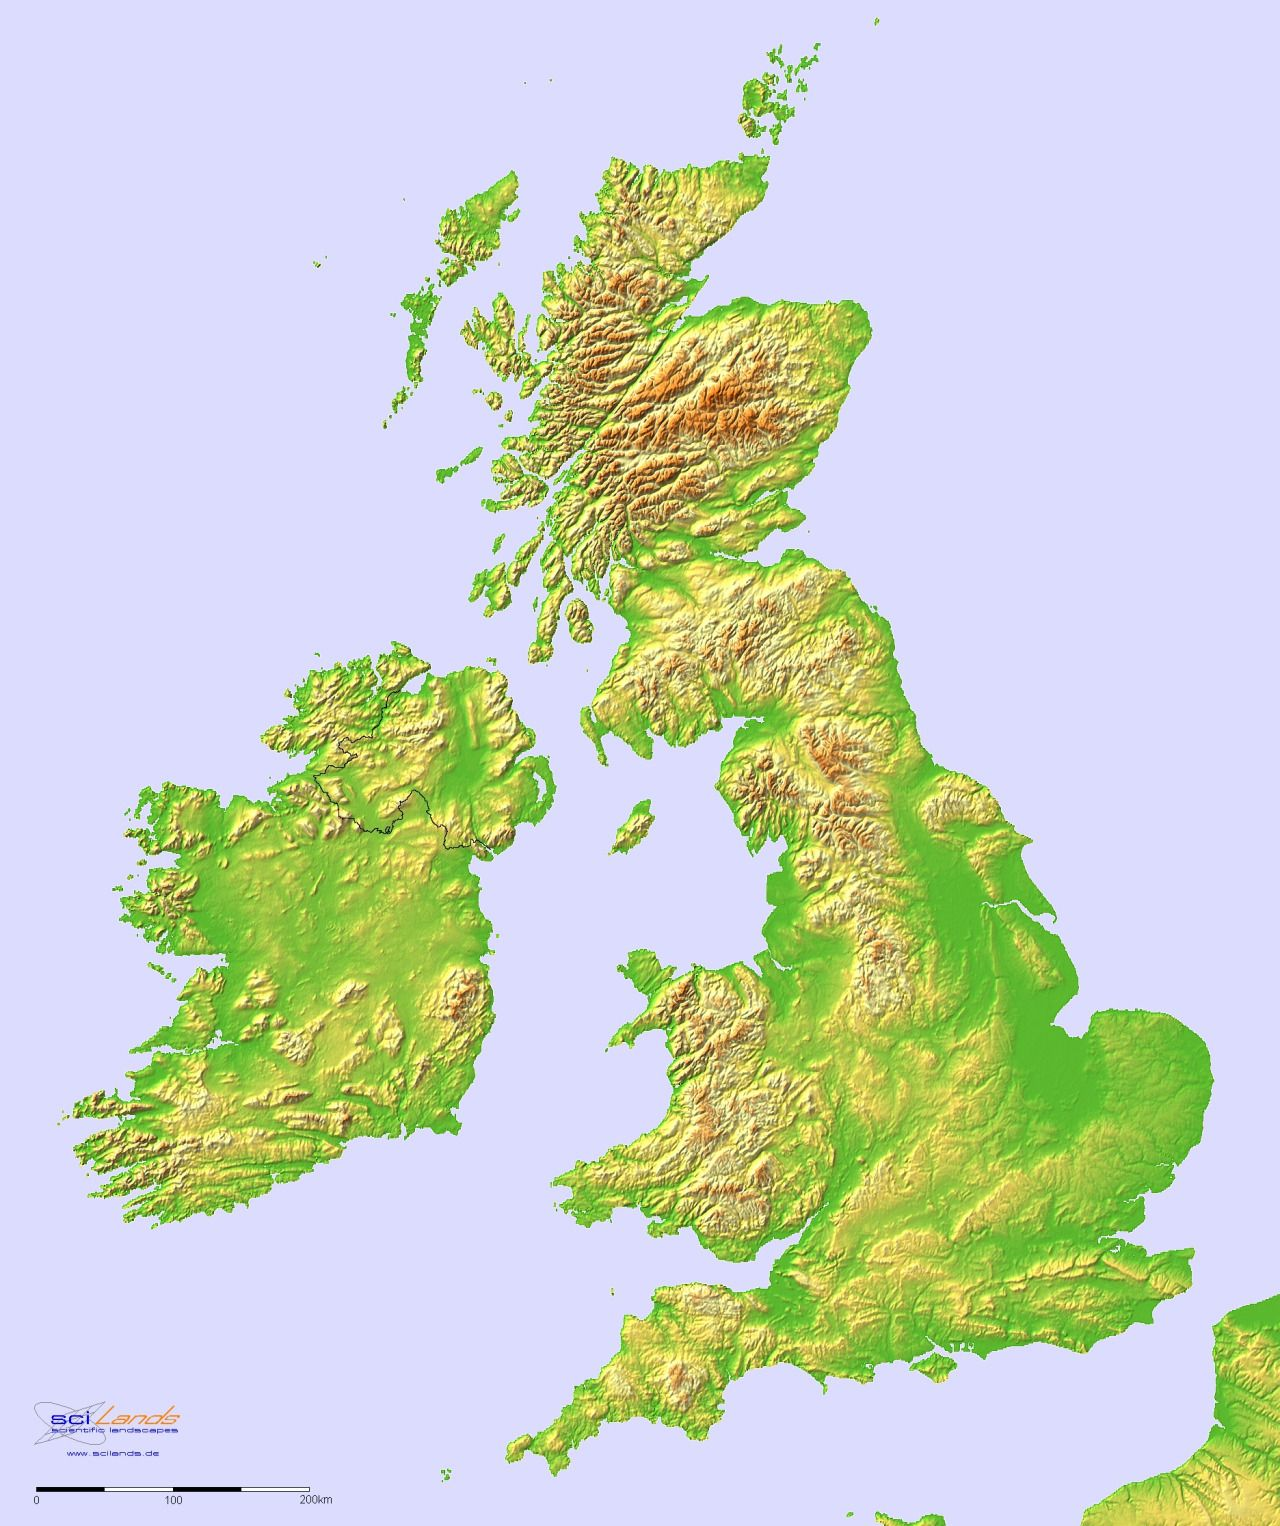 Topographic Hillshade Map Of Great Britain And Ireland More - Contiguous us hillshade map